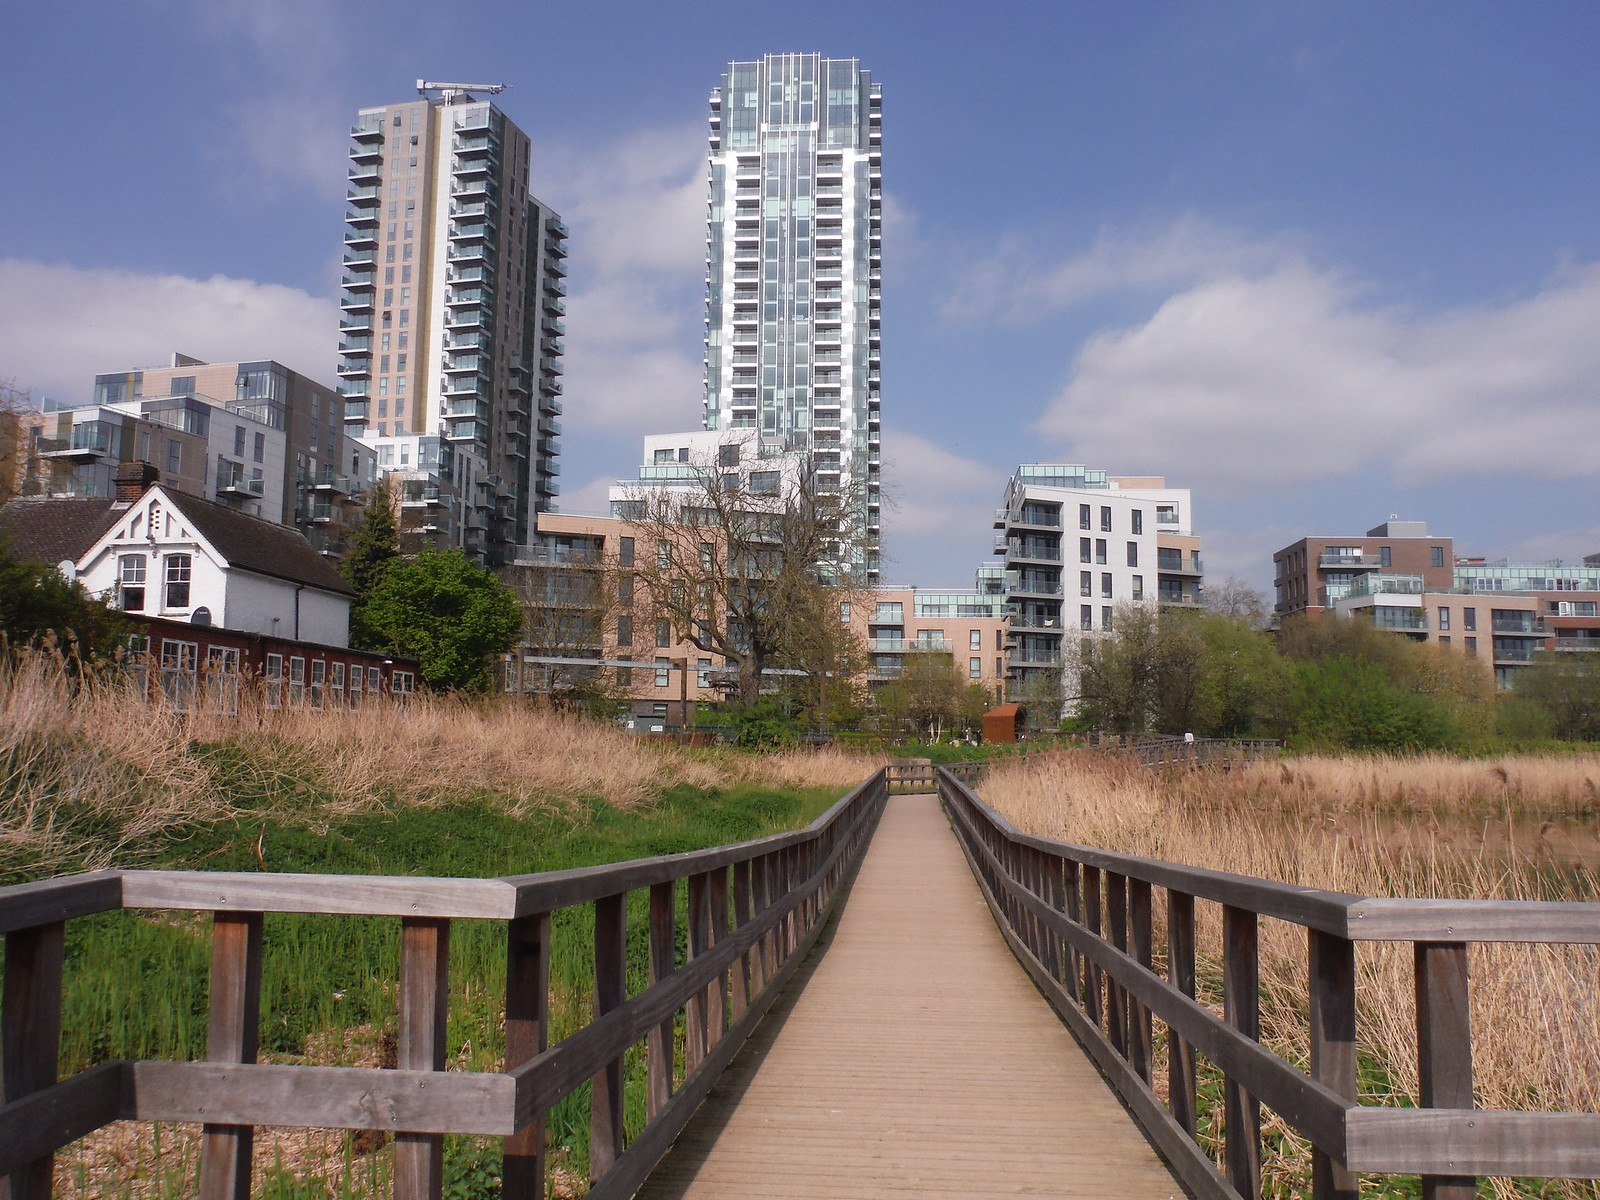 Boardwalk through Reed Beds (I), Woodberry Wetlands SWC Short Walk 26 - Woodberry Wetlands (Stoke Newington Reservoirs)